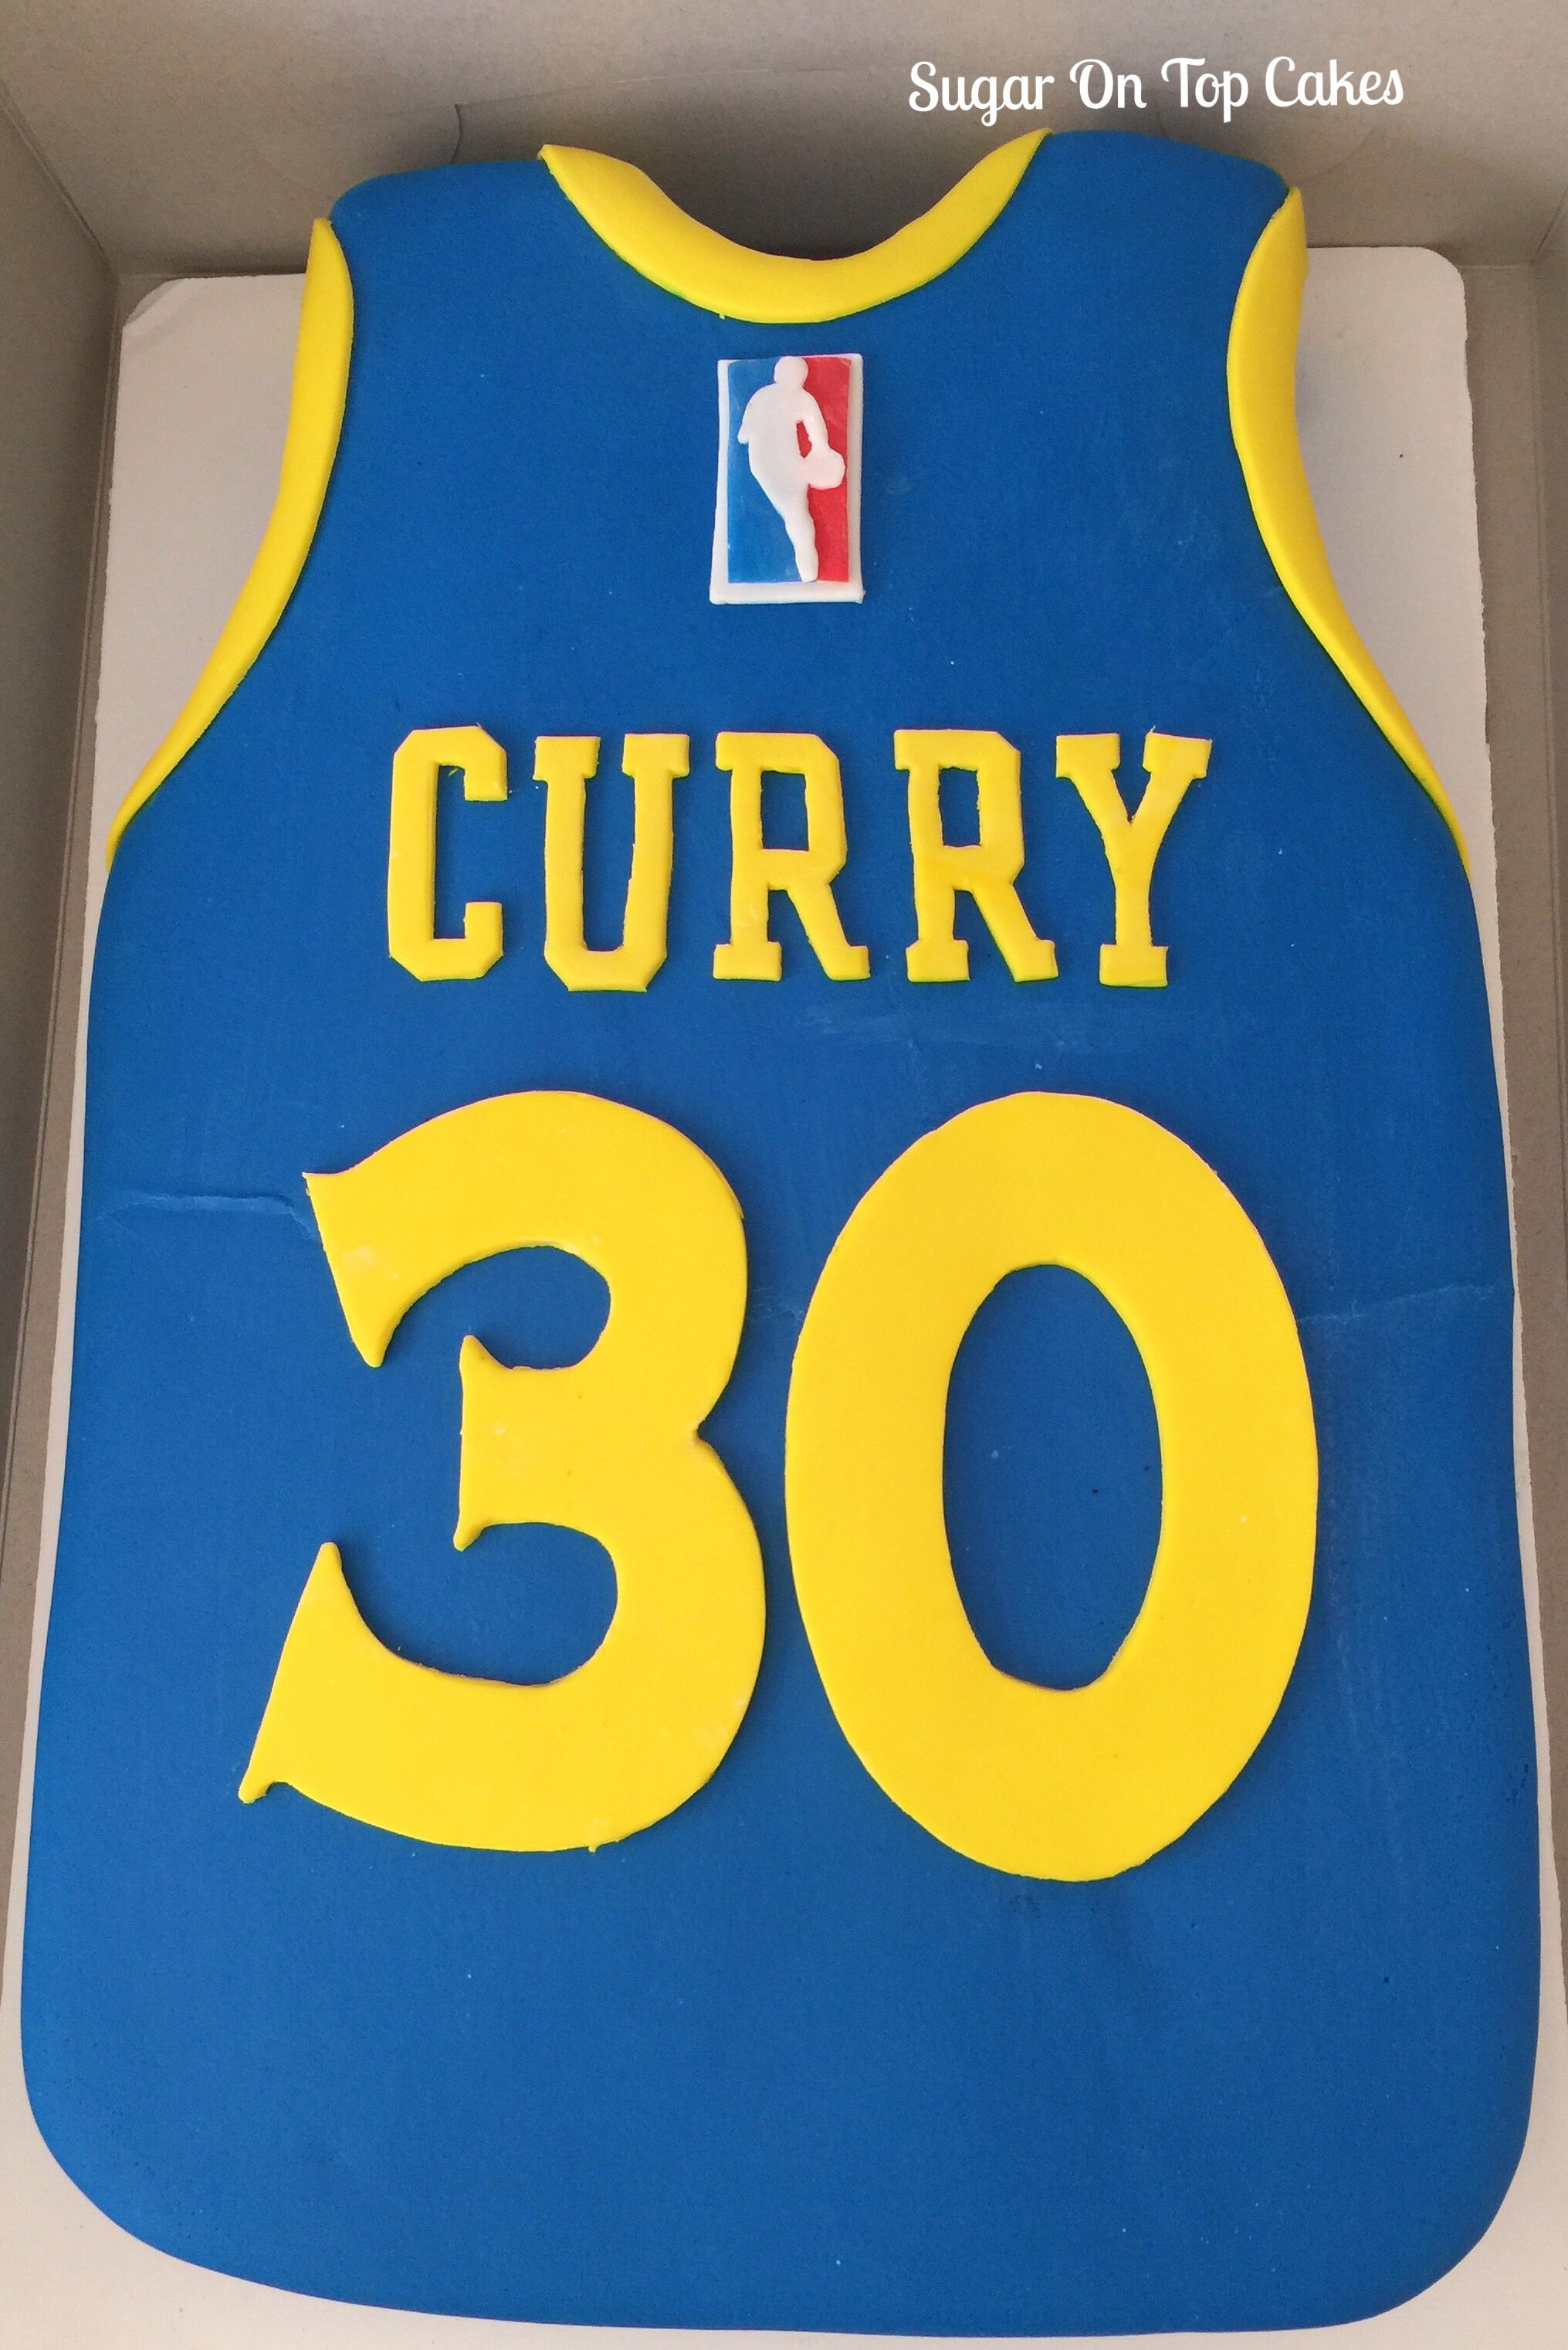 Steph Curry Jersey Cake Facebook Com Sugarontopcakes